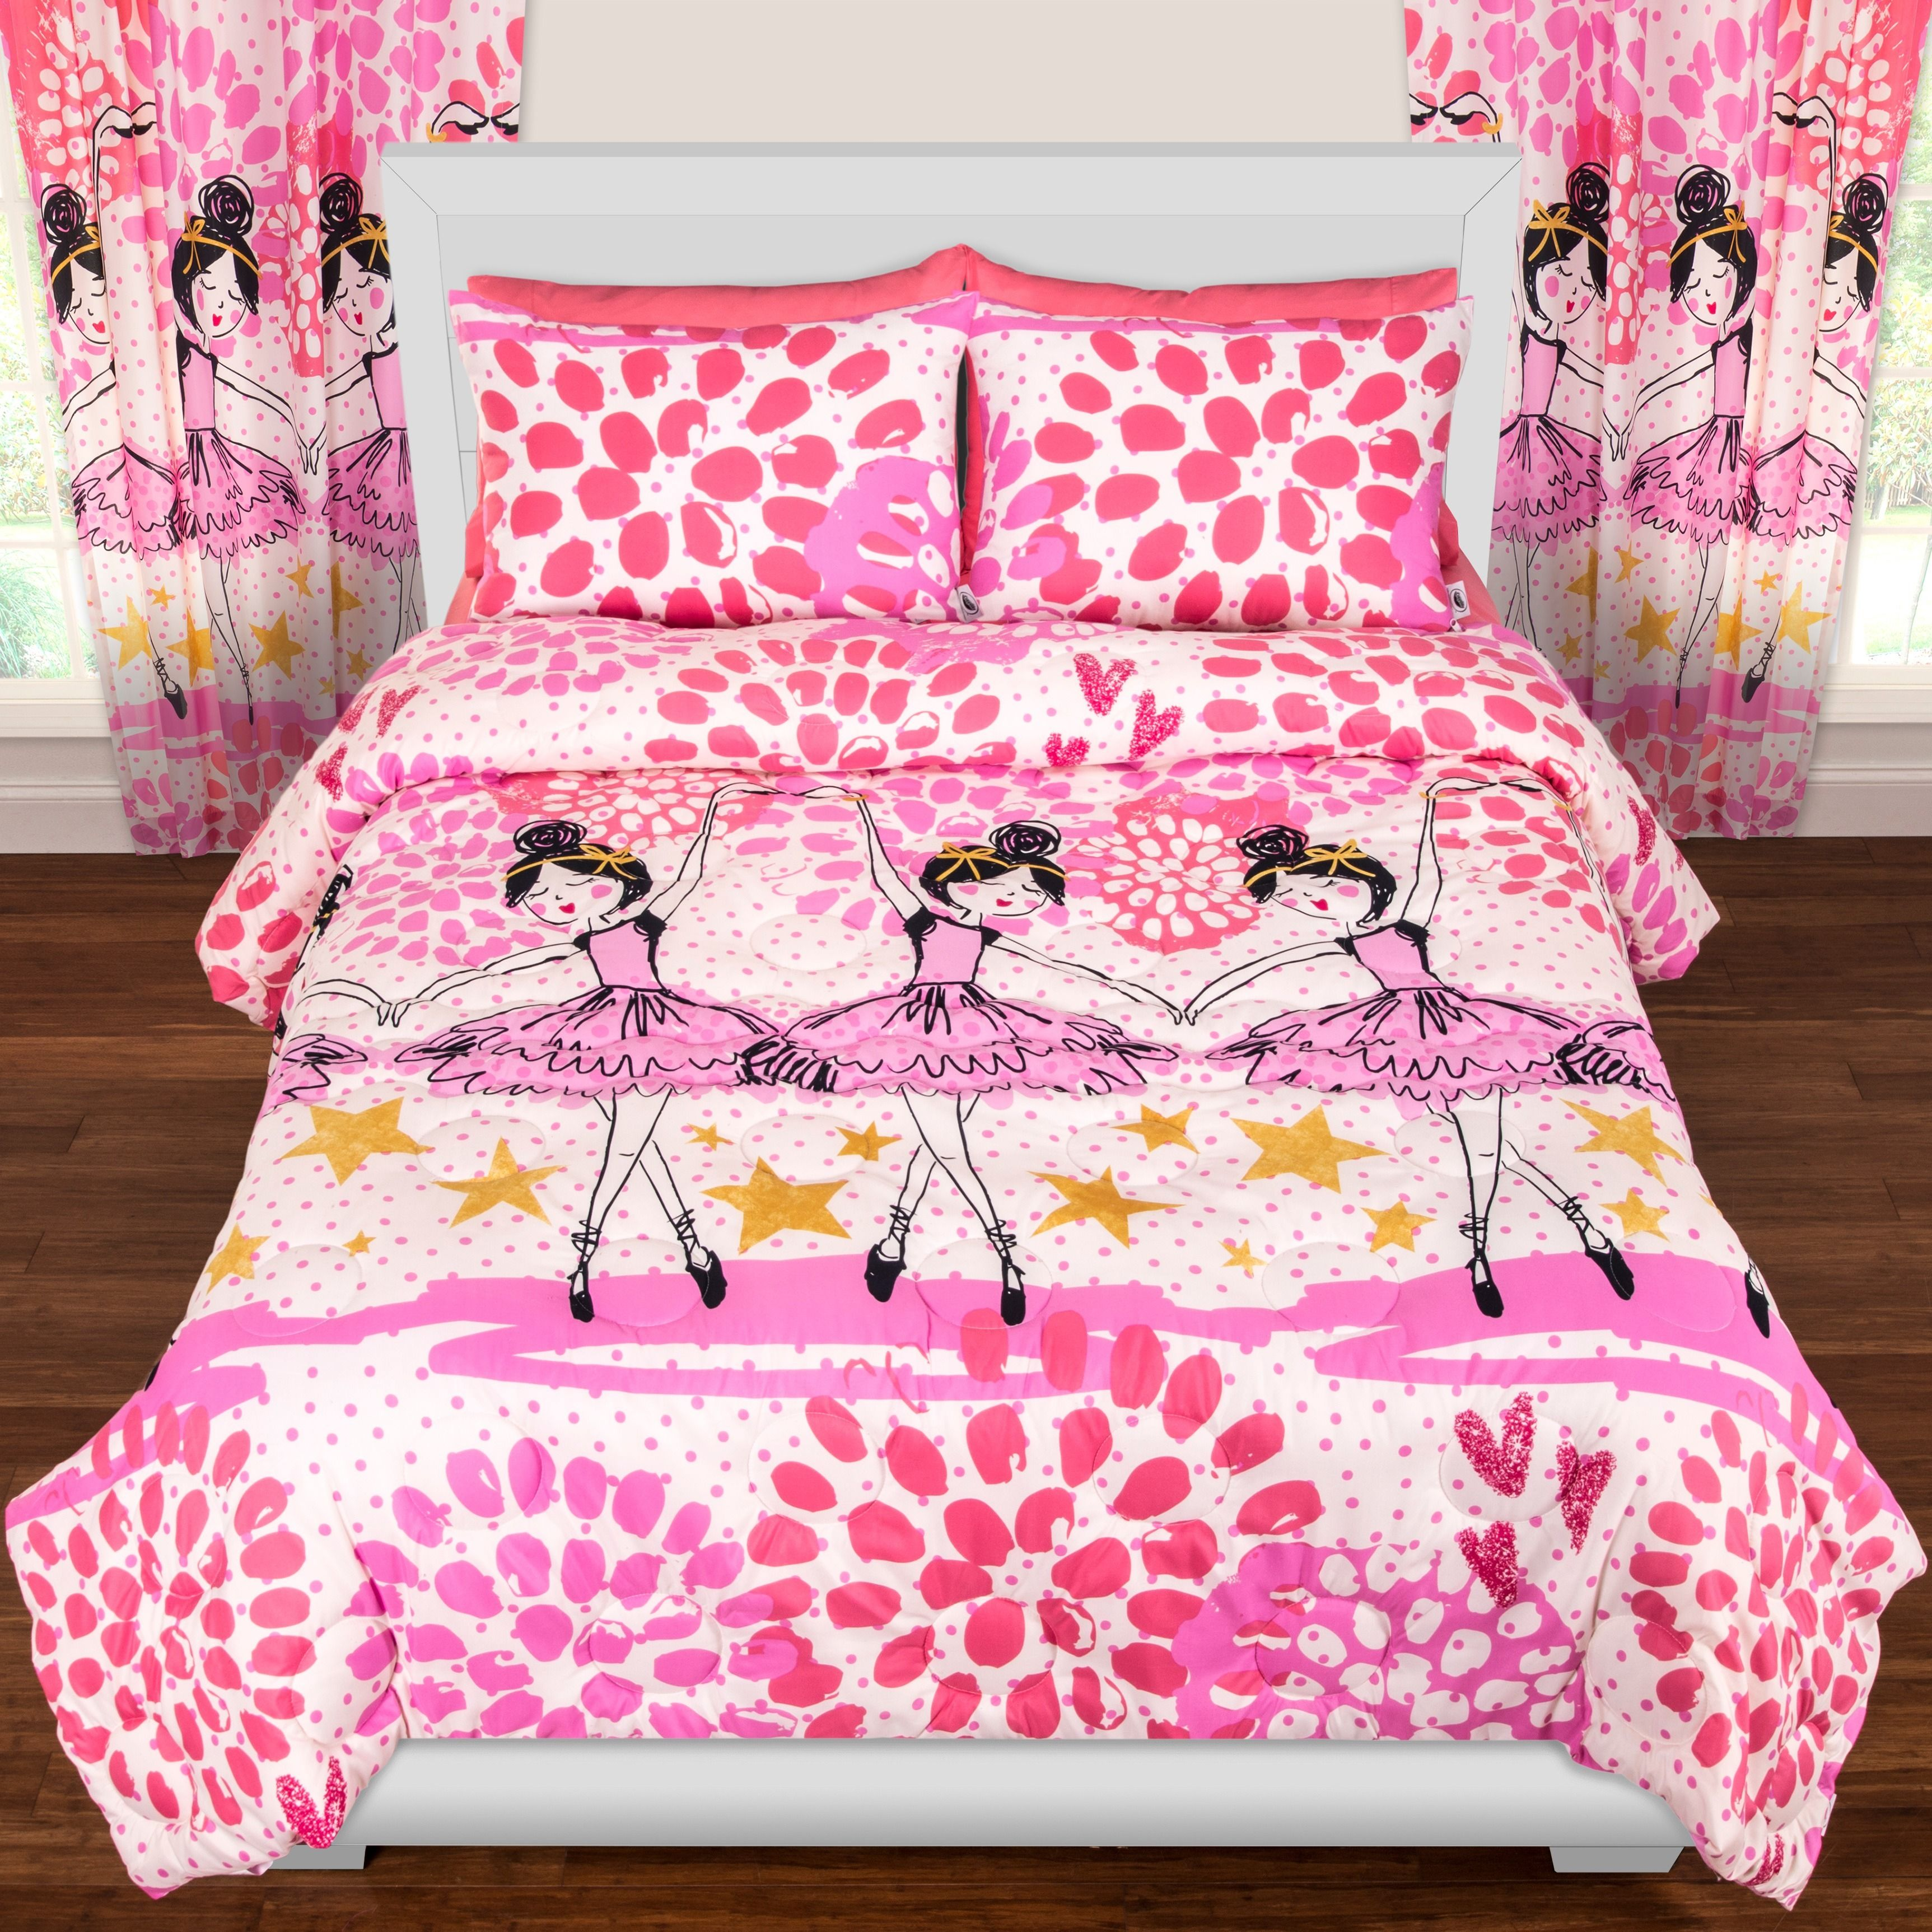 Featuring A Pattern Of Beautiful Ballerinas Dancing Among The Stars, This  Adorable Twinkle Toes Comforter Set From Crayola Will Have You Dancing Your  Way To ...